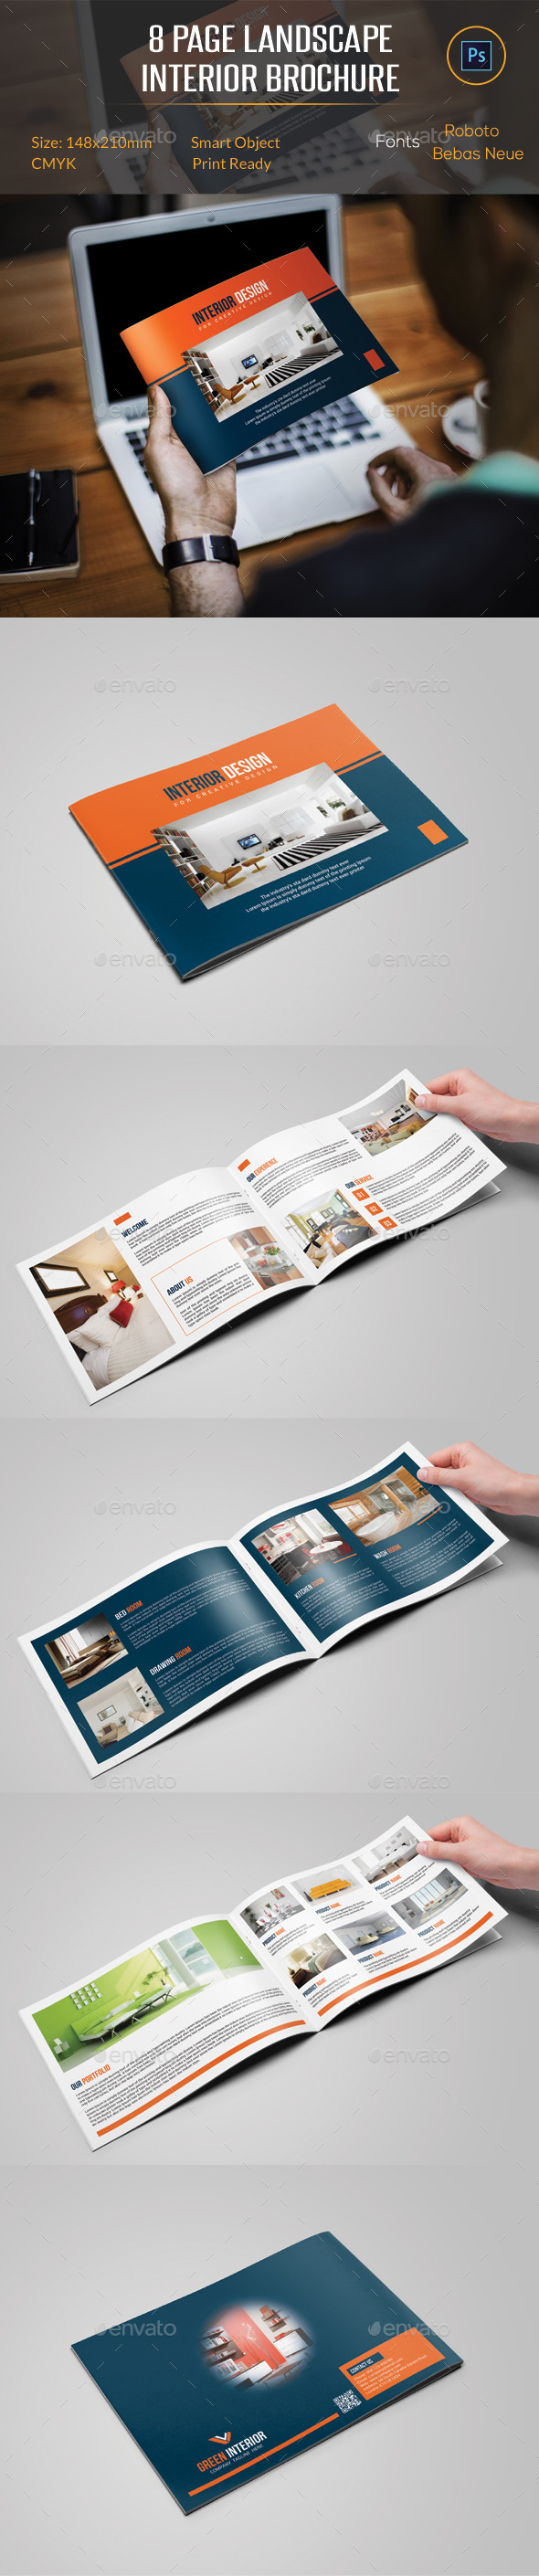 GraphicRiver 8 Pages Landscape Interior Brochure 11867032